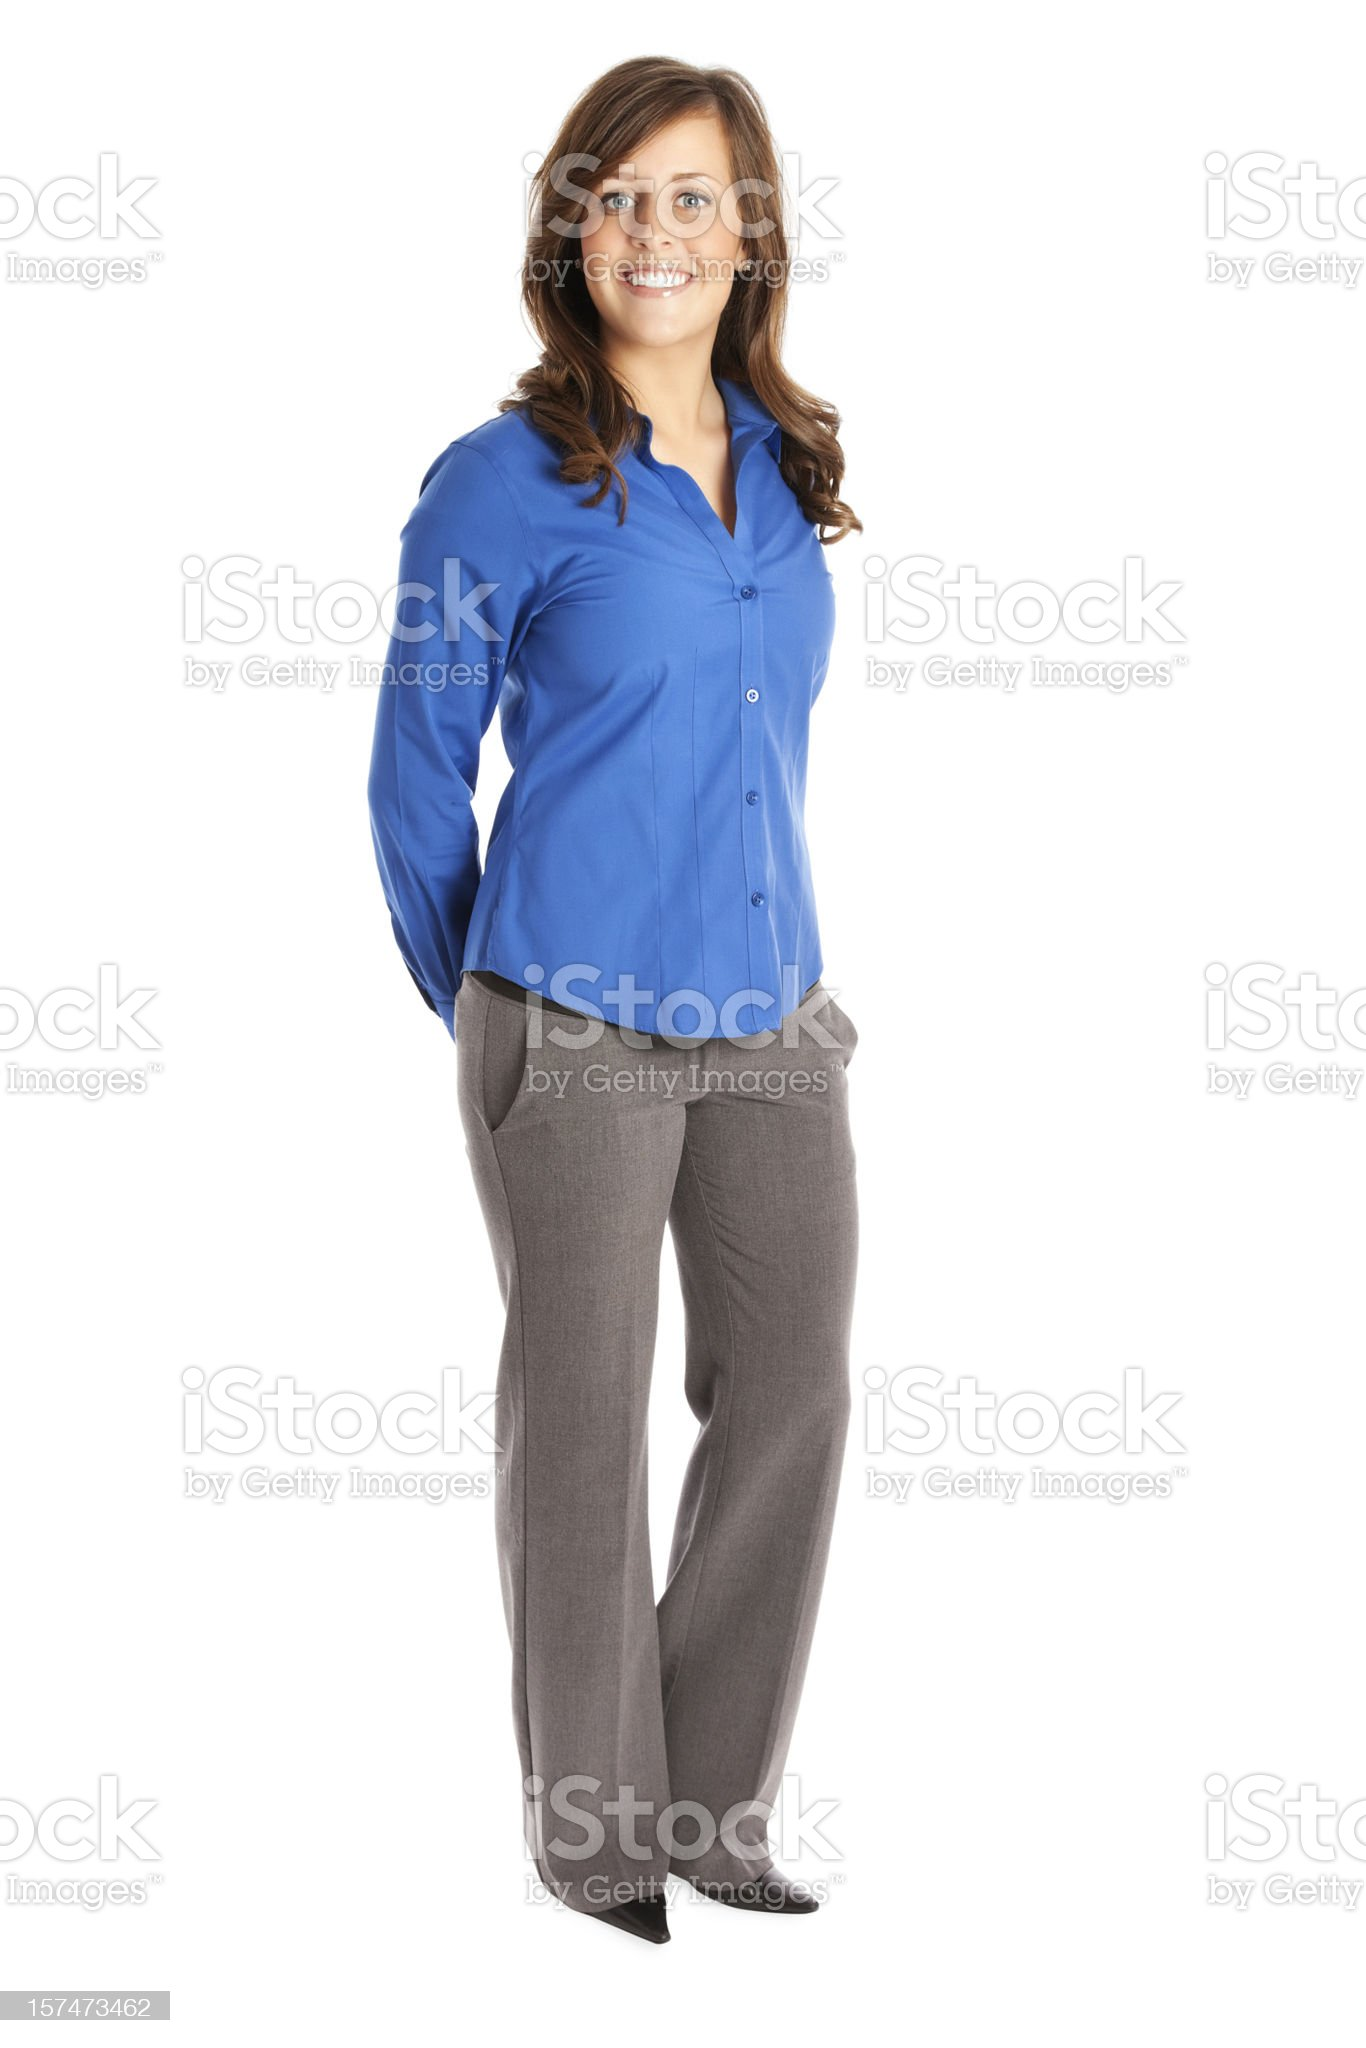 Businesswoman in Blue royalty-free stock photo